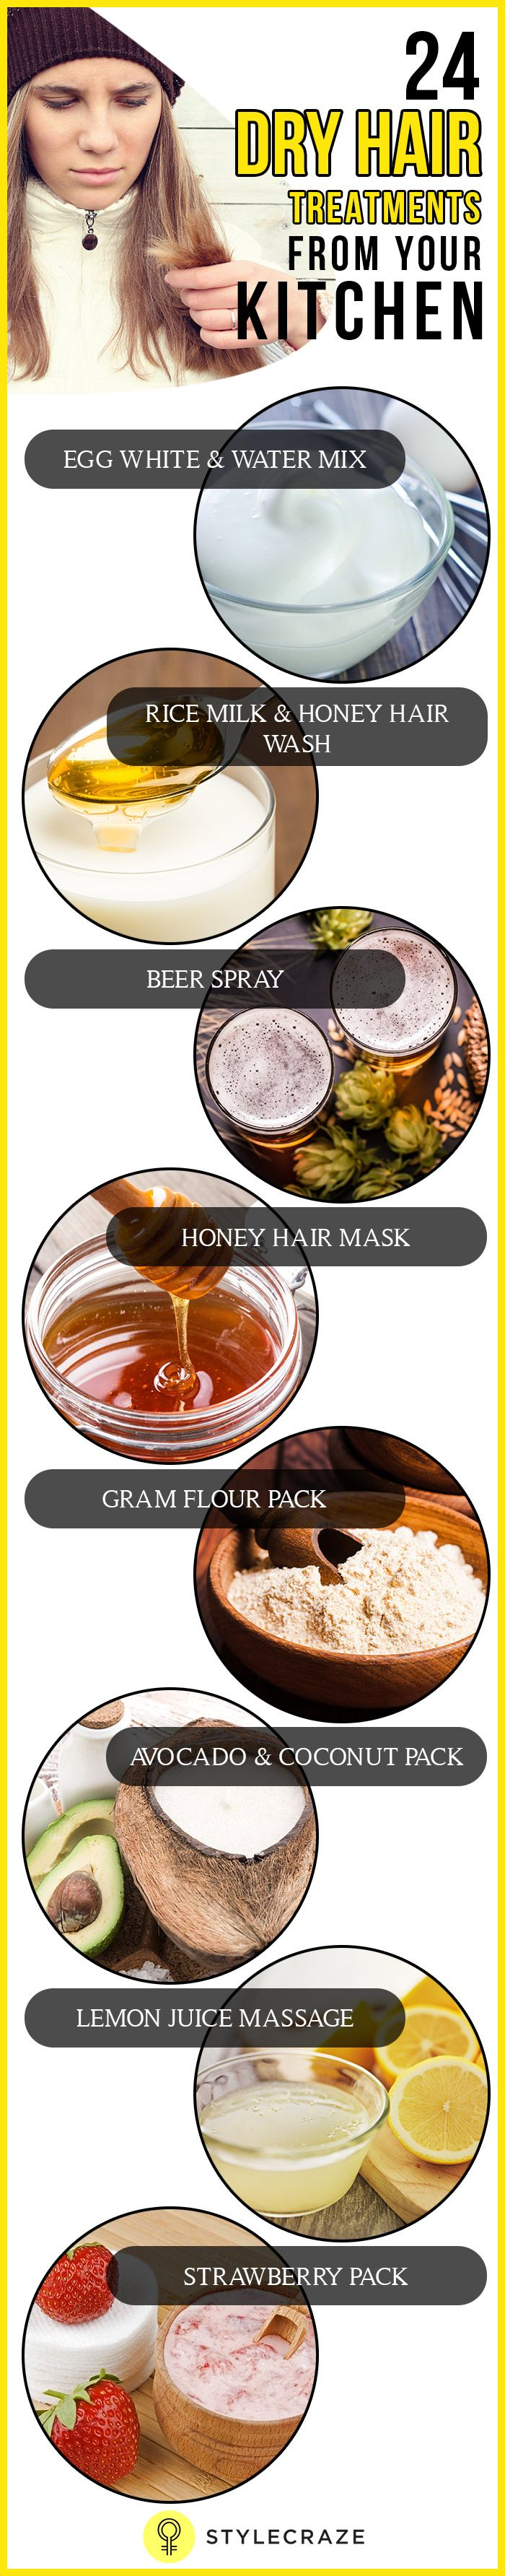 If you are looking for the best organic hair treatments to get your hair that shines with health, we have just the thing for you! Here are the best dry hair kitchen treatments you can try at home for soft, healthy and manageable hair.